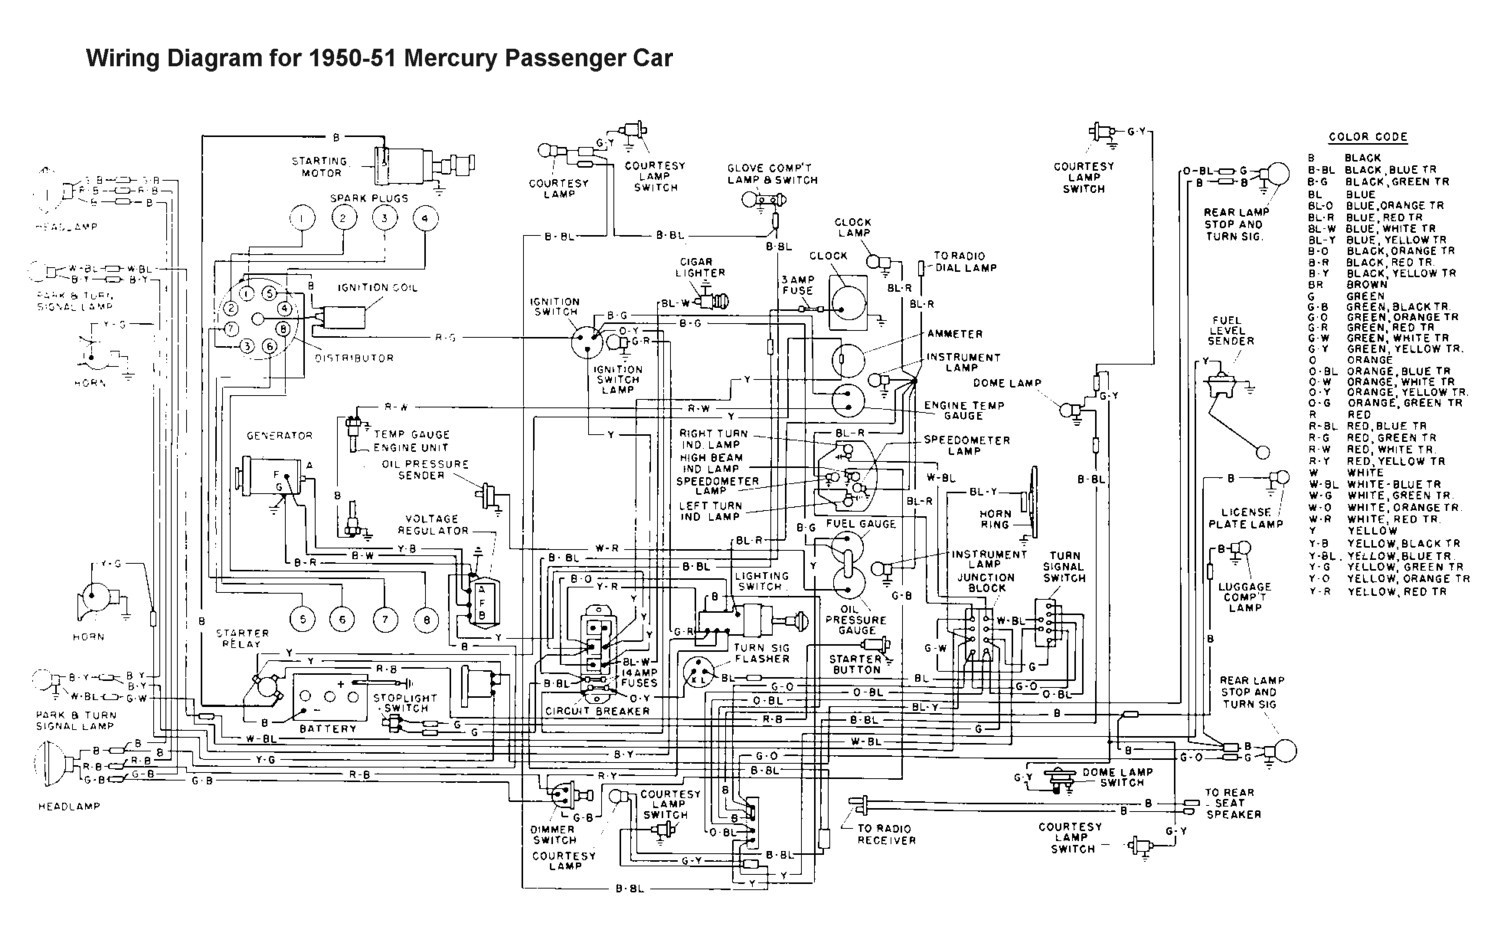 Flathead electrical wiring diagrams wiring for 1950 51 mercury car swarovskicordoba Choice Image